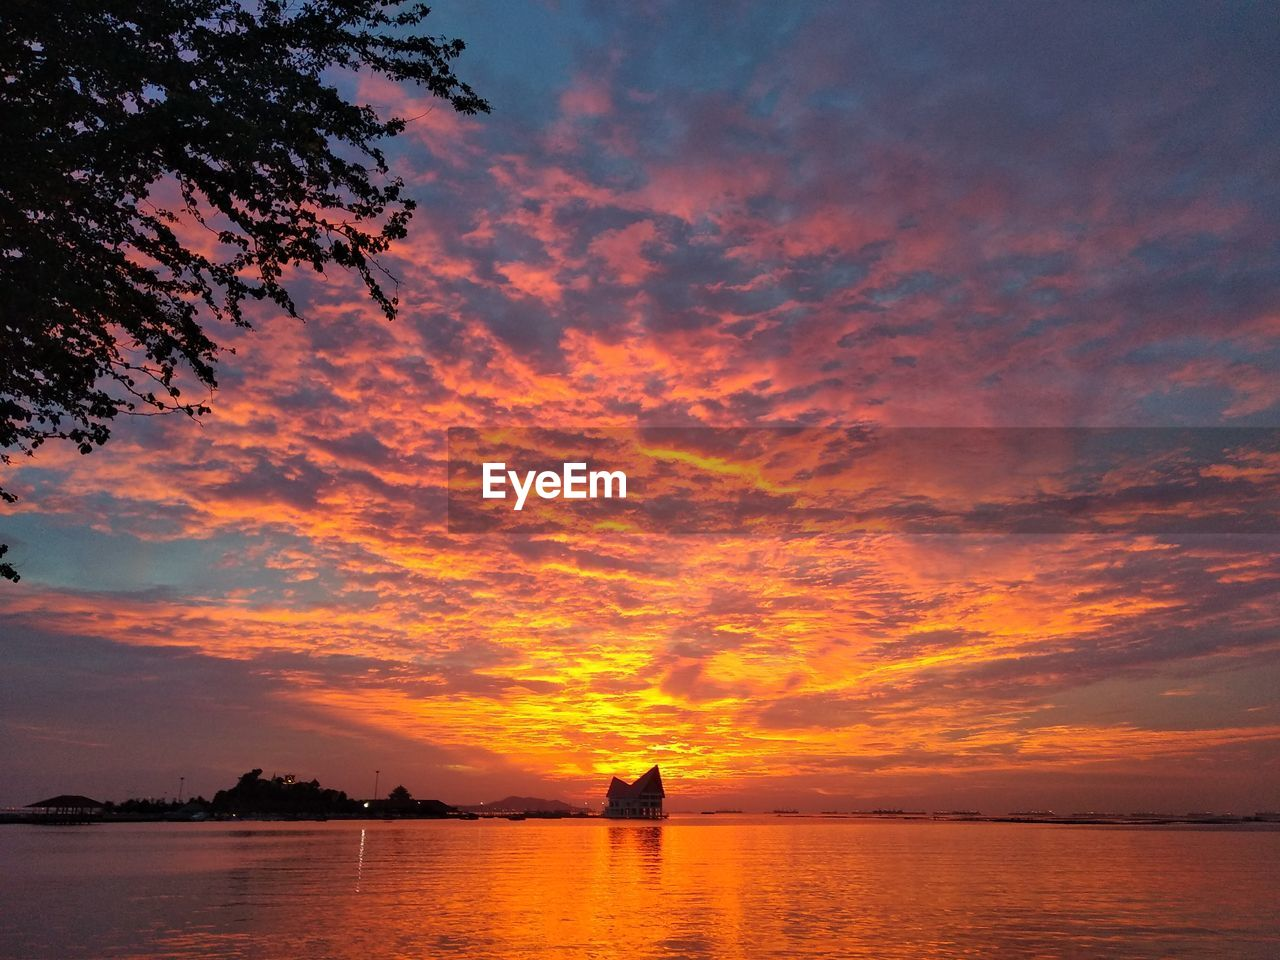 sunset, sky, cloud - sky, water, orange color, scenics - nature, beauty in nature, sea, tranquility, tree, silhouette, tranquil scene, nature, idyllic, plant, waterfront, nautical vessel, horizon over water, transportation, outdoors